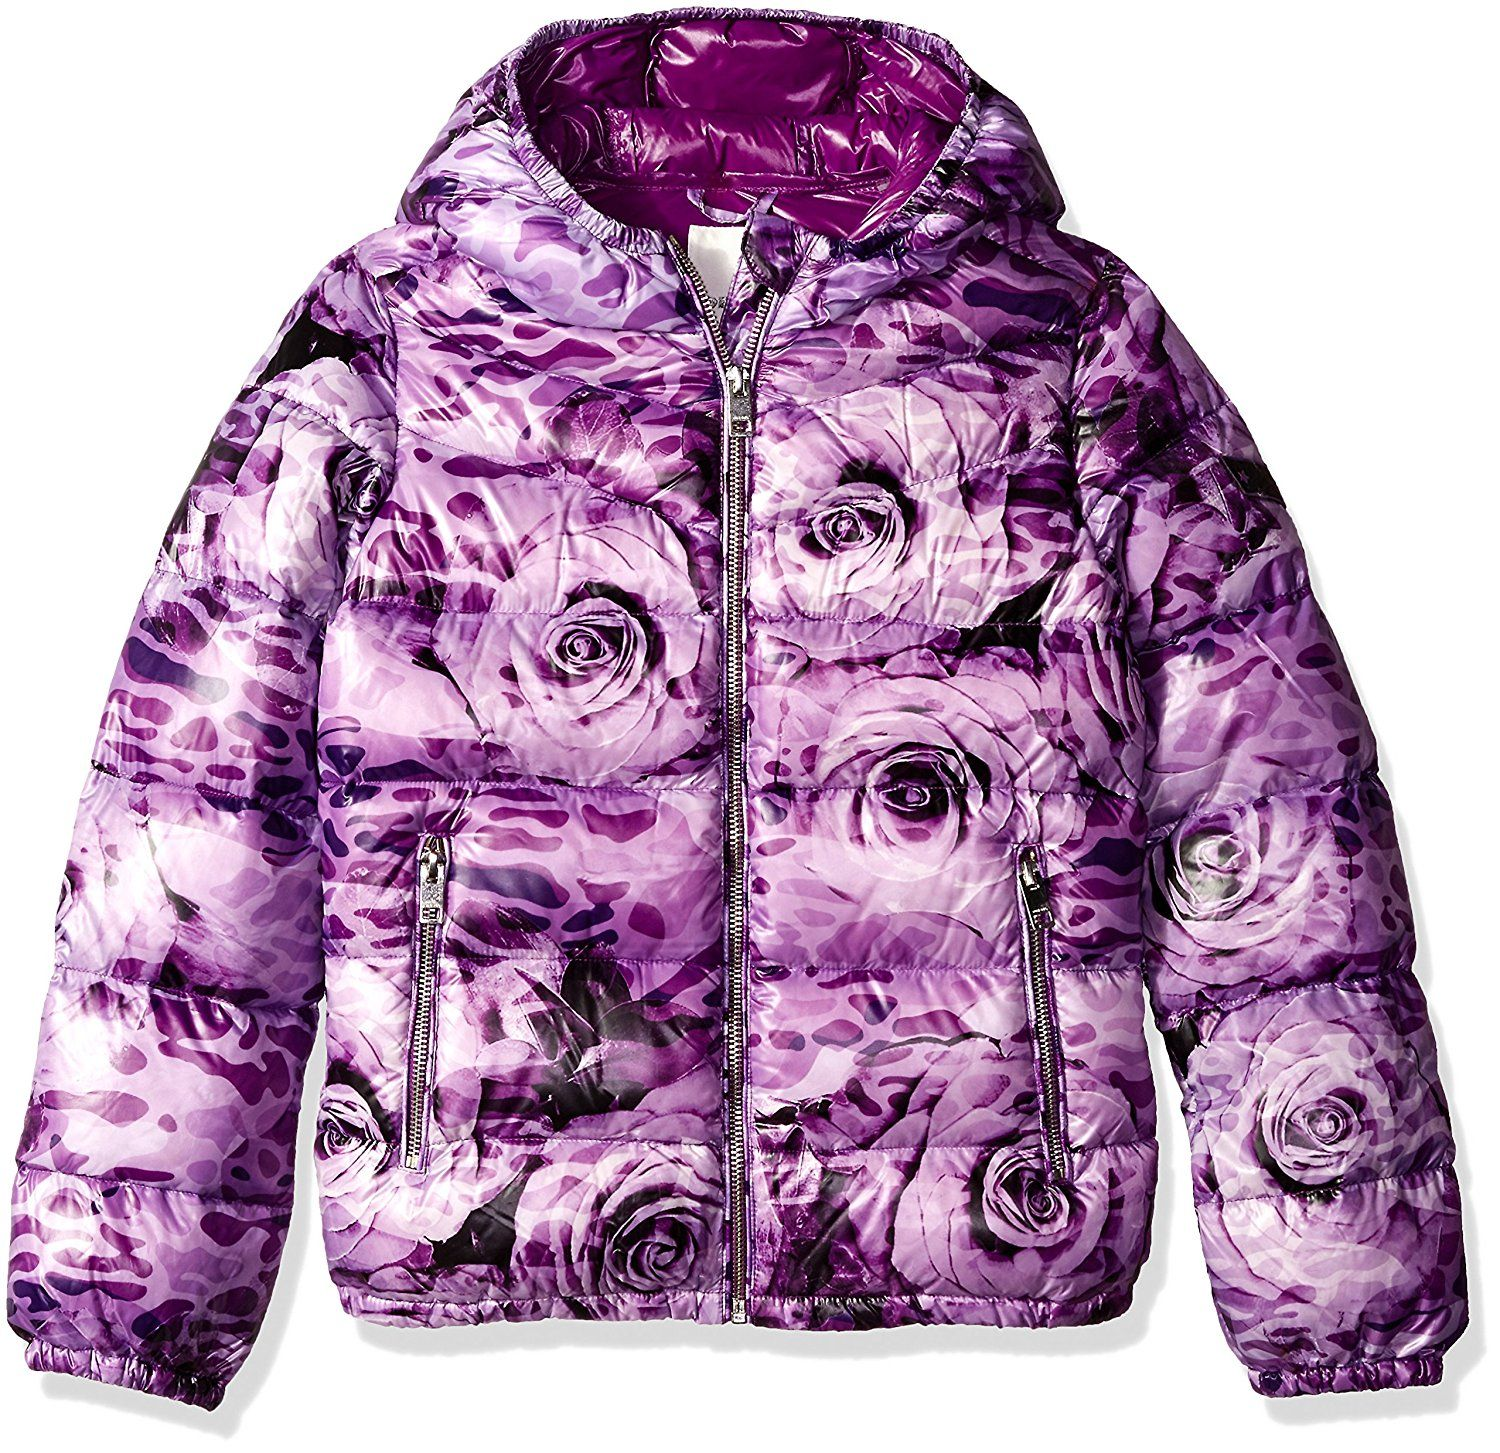 Amazon Com Diesel Girls Outerwear Jacket More Styles Available Clothing Outerwear Jackets Girls Winter Coats Jackets [ 1453 x 1500 Pixel ]